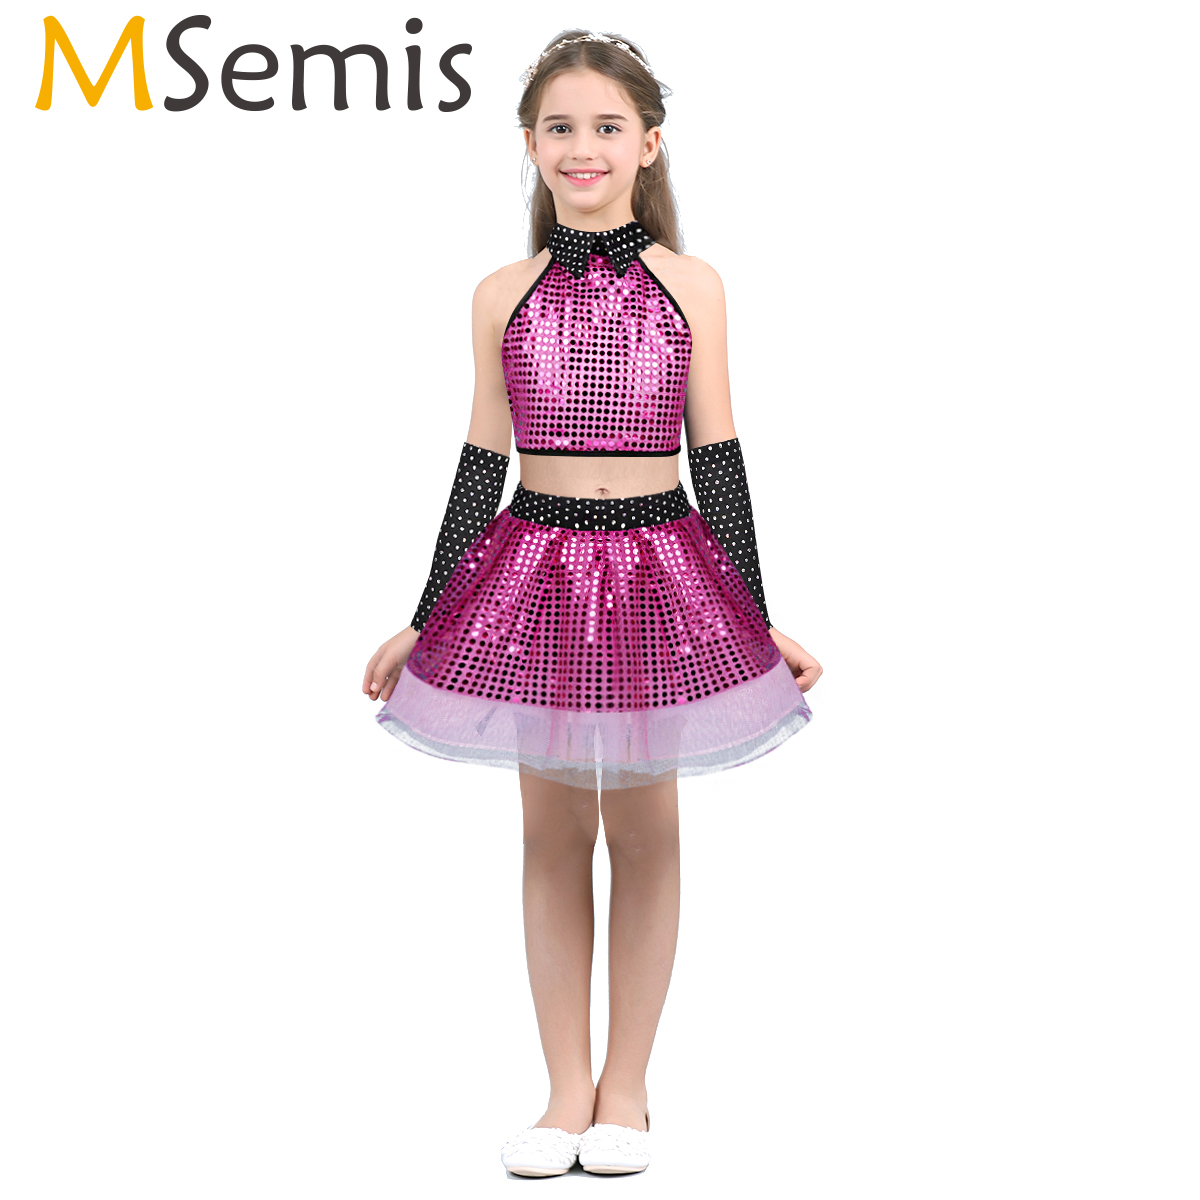 >MSemis Kids Girls Sequins Modern Jazz Dance Costume <font><b>Outfits</b></font> Crop Top Tutu Skirt Arm Sleeves Latin Waltz HipHop Stage Performance